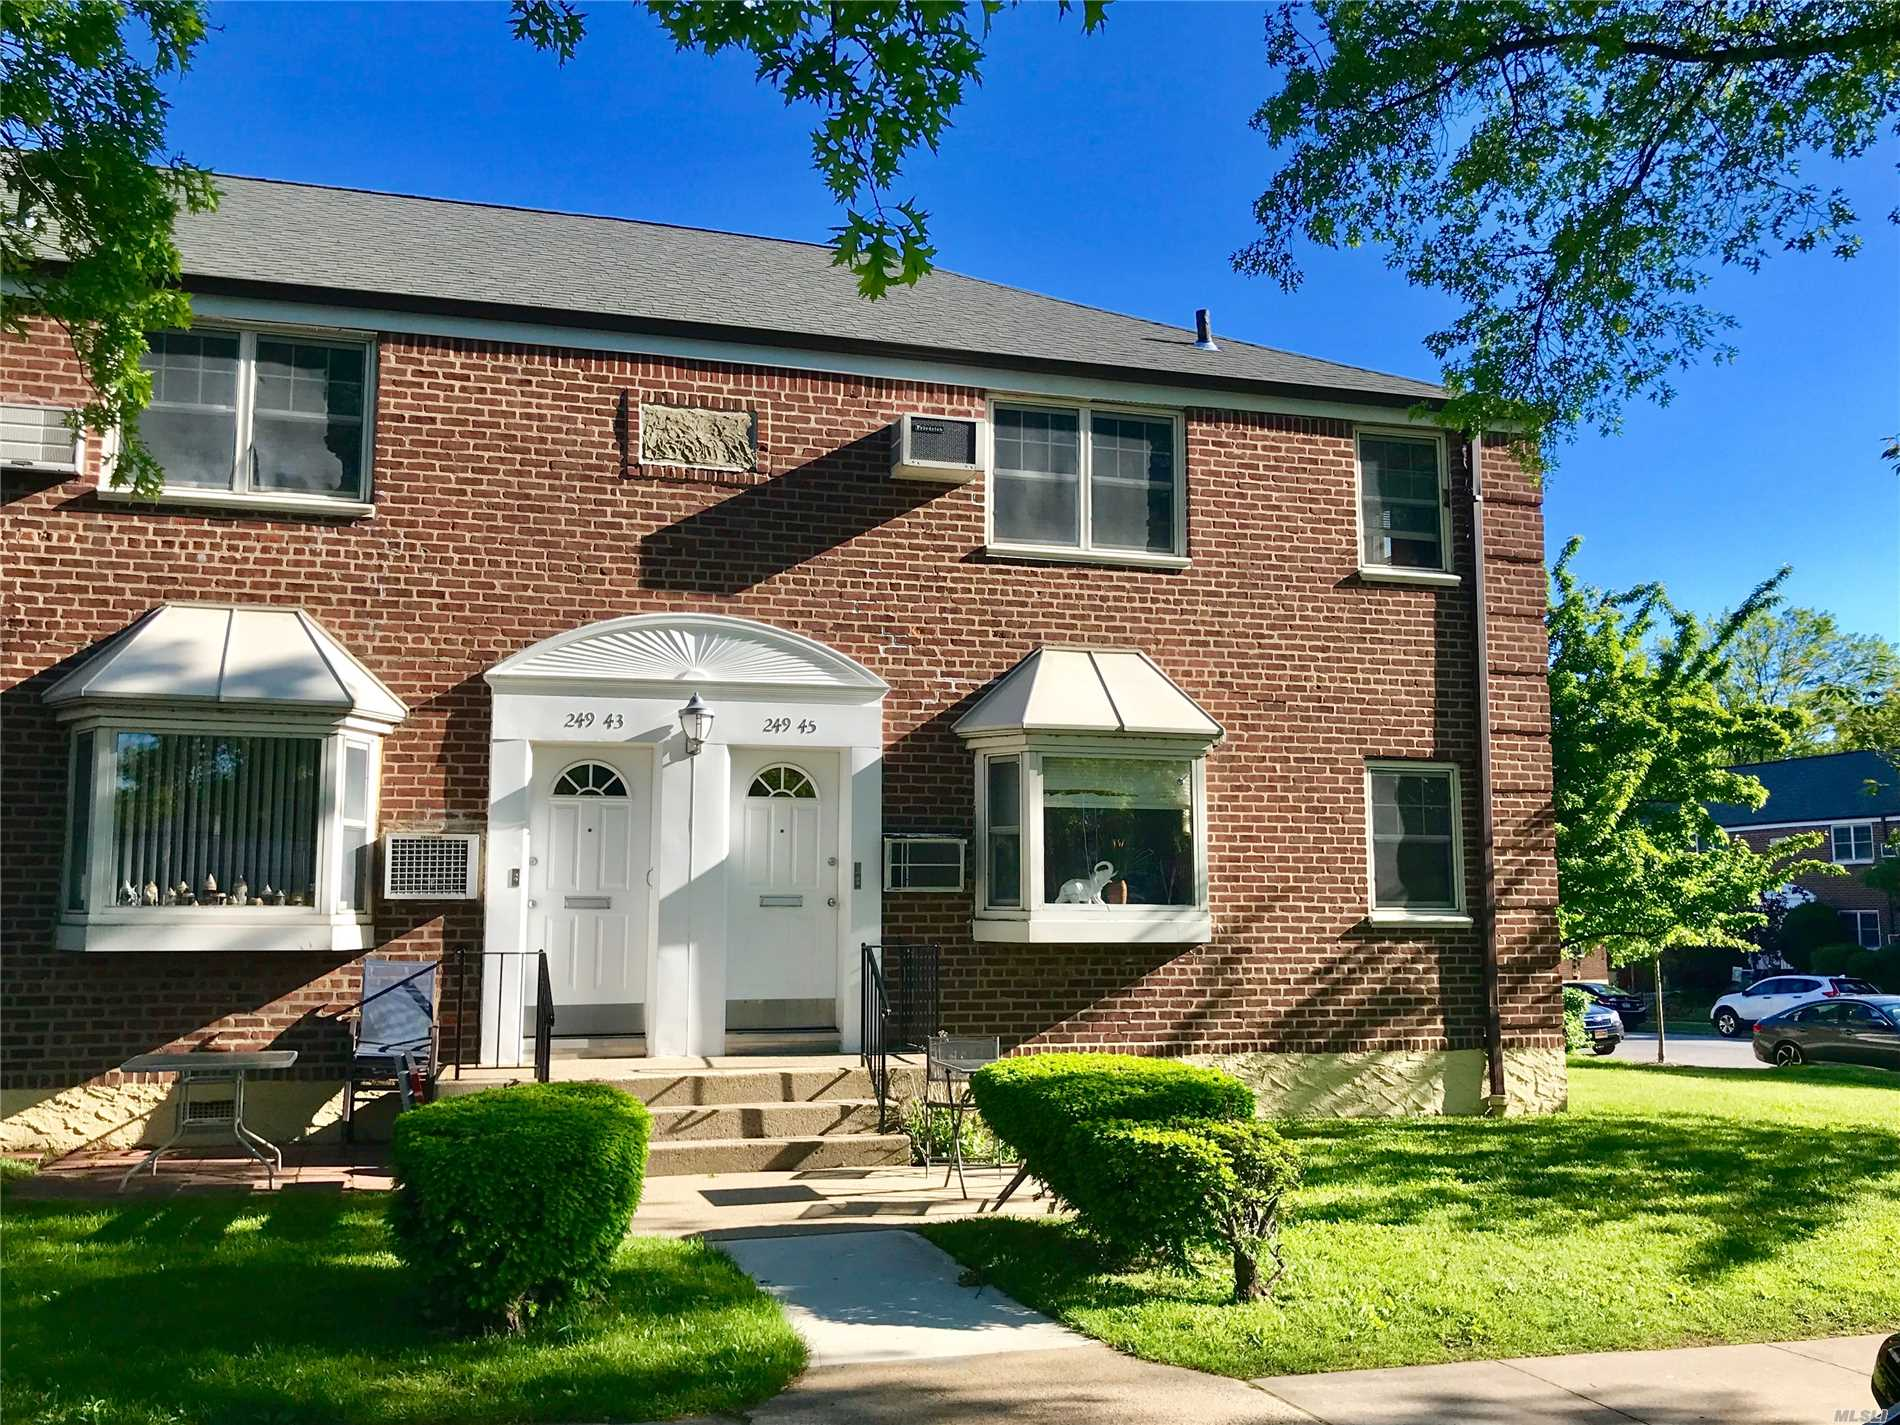 Welcome to this pristine one bedroom Co-op In Deepdale Gardens in Little Neck.This sunny upper level corner unit is approximately 650 square feet,  featuring a large comfortable bedroom with plenty of closet space, an inviting living room, dining area, renovated kitchen and bathroom, hardwood floors throughout and a huge attic perfect for storage. A true must see!